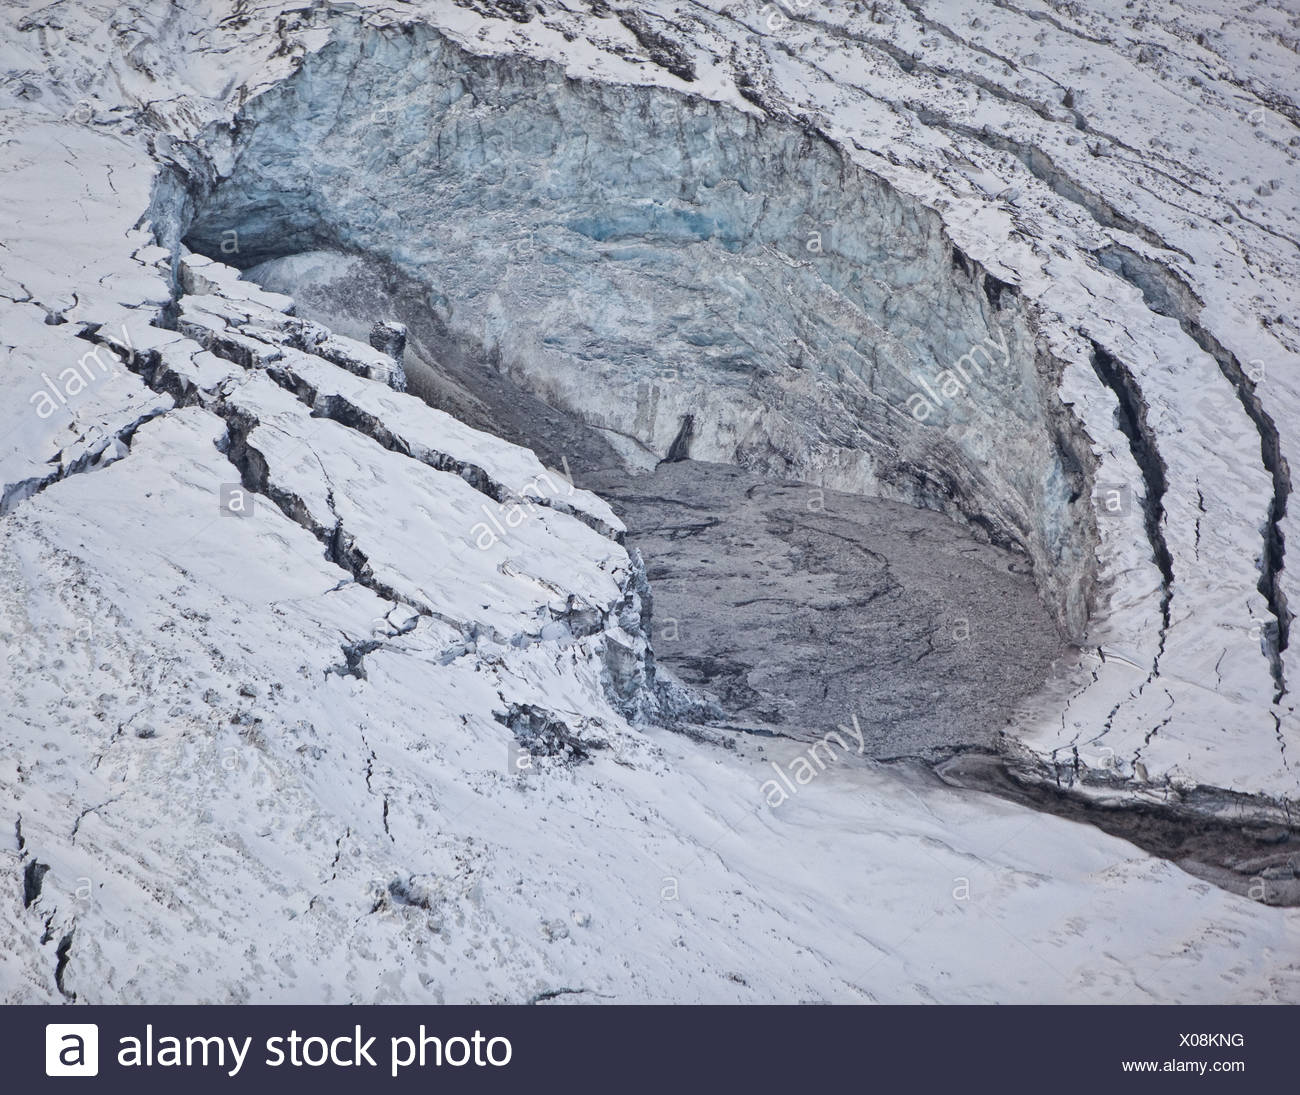 Gigjokull,-outlet glacier from Eyjafjallajokull.  Rushing water and flooding due to Eyjafjallajokull Volcano Eruption, Iceland - Stock Image